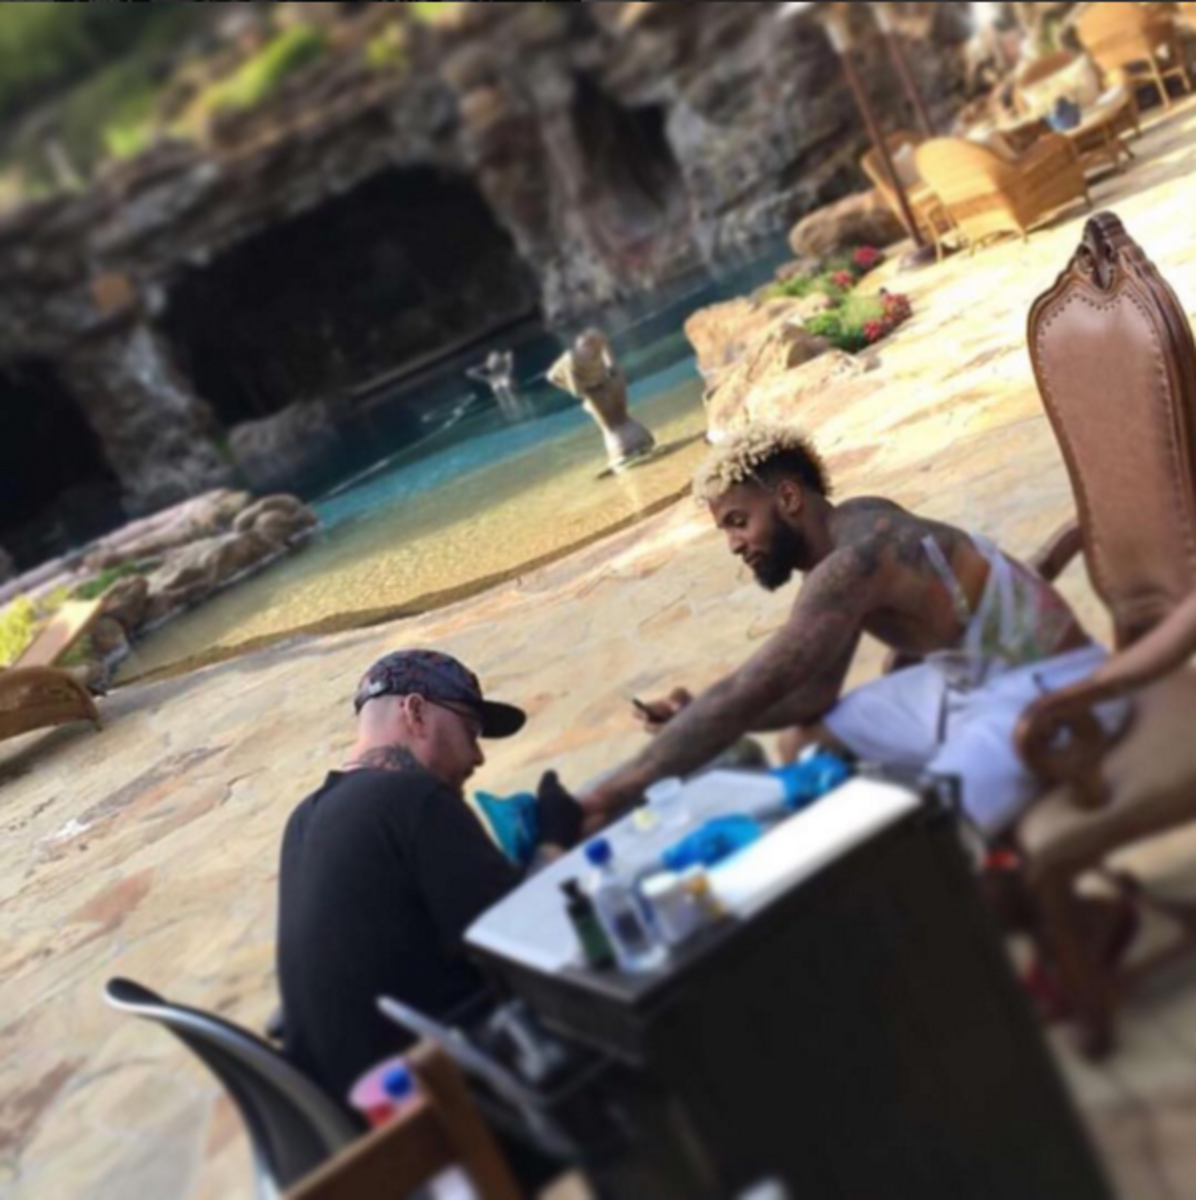 Bang Bang working on a second tattoo for Beckham.